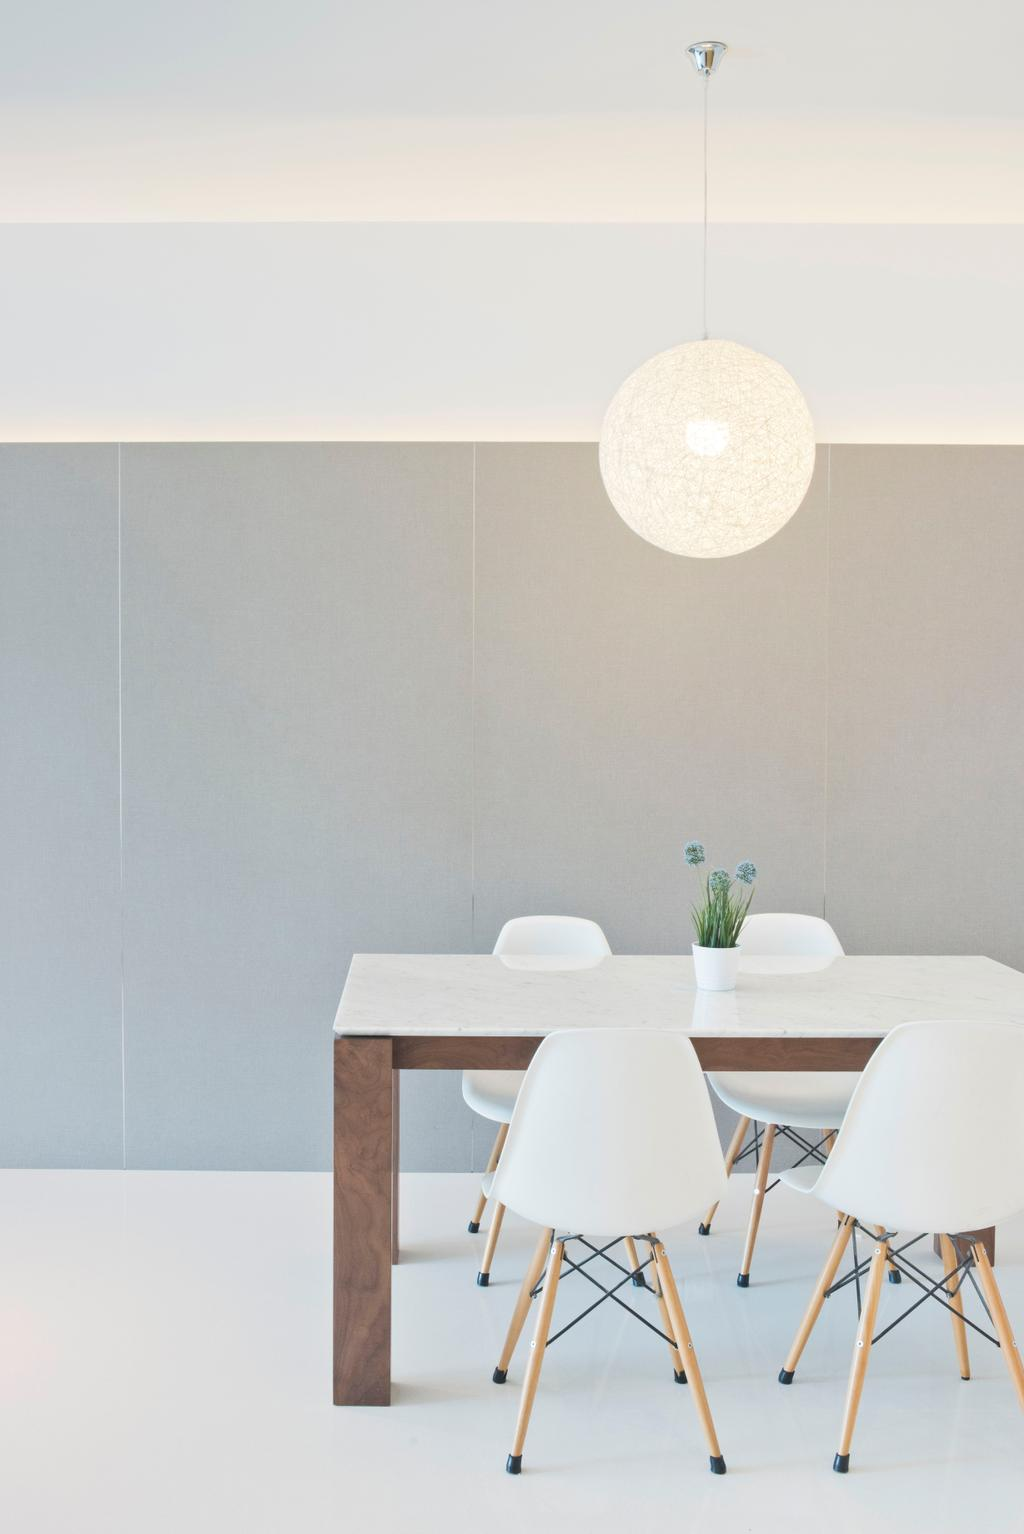 Minimalistic, Condo, Dining Room, Waterina, Architect, 7 Interior Architecture, , Minimalist, Simple Colours, Clean Cut, Neutral Colours, White Dsw Chair, Eames Chair, White Furniture, All White, Pendant Lamp, Round Pendant Lamp, Hanging Lamp, Grey Wall, Dining Table, Furniture, Table, Flora, Jar, Plant, Potted Plant, Pottery, Vase, Indoors, Interior Design, Room, Art, Blossom, Flower, Flower Arrangement, Ikebana, Ornament